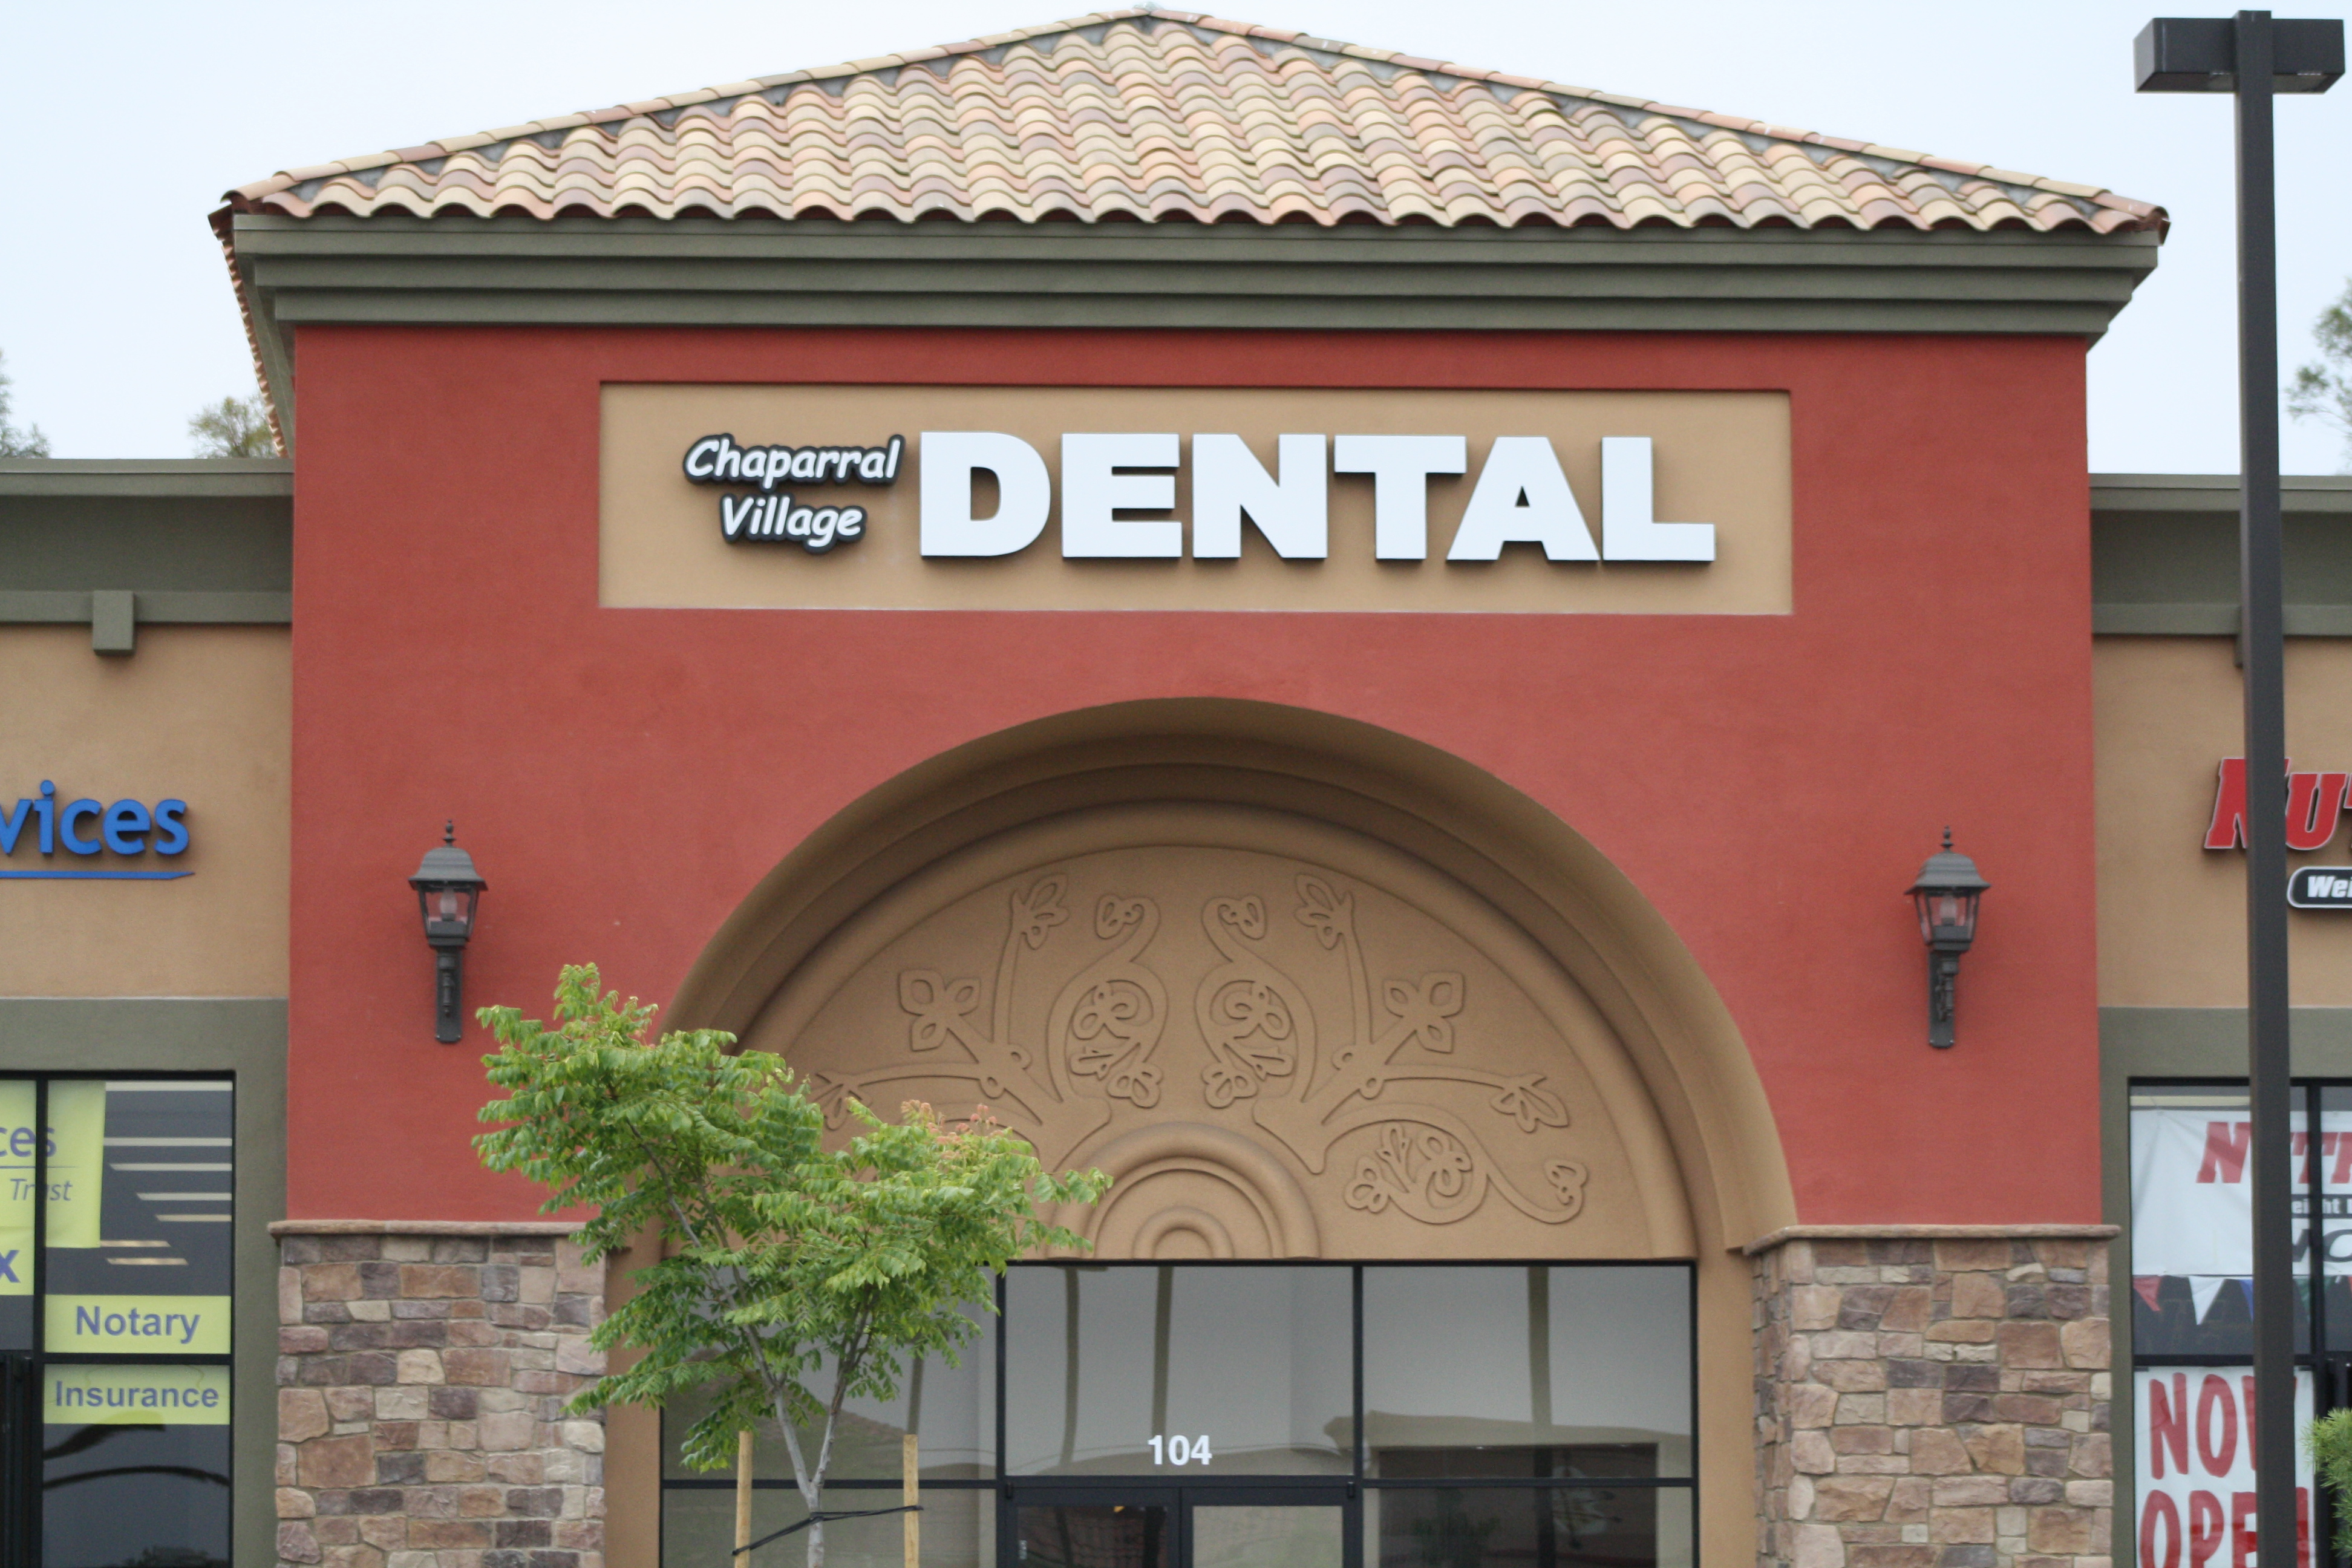 Chaparral Village Dental & Orthodontics